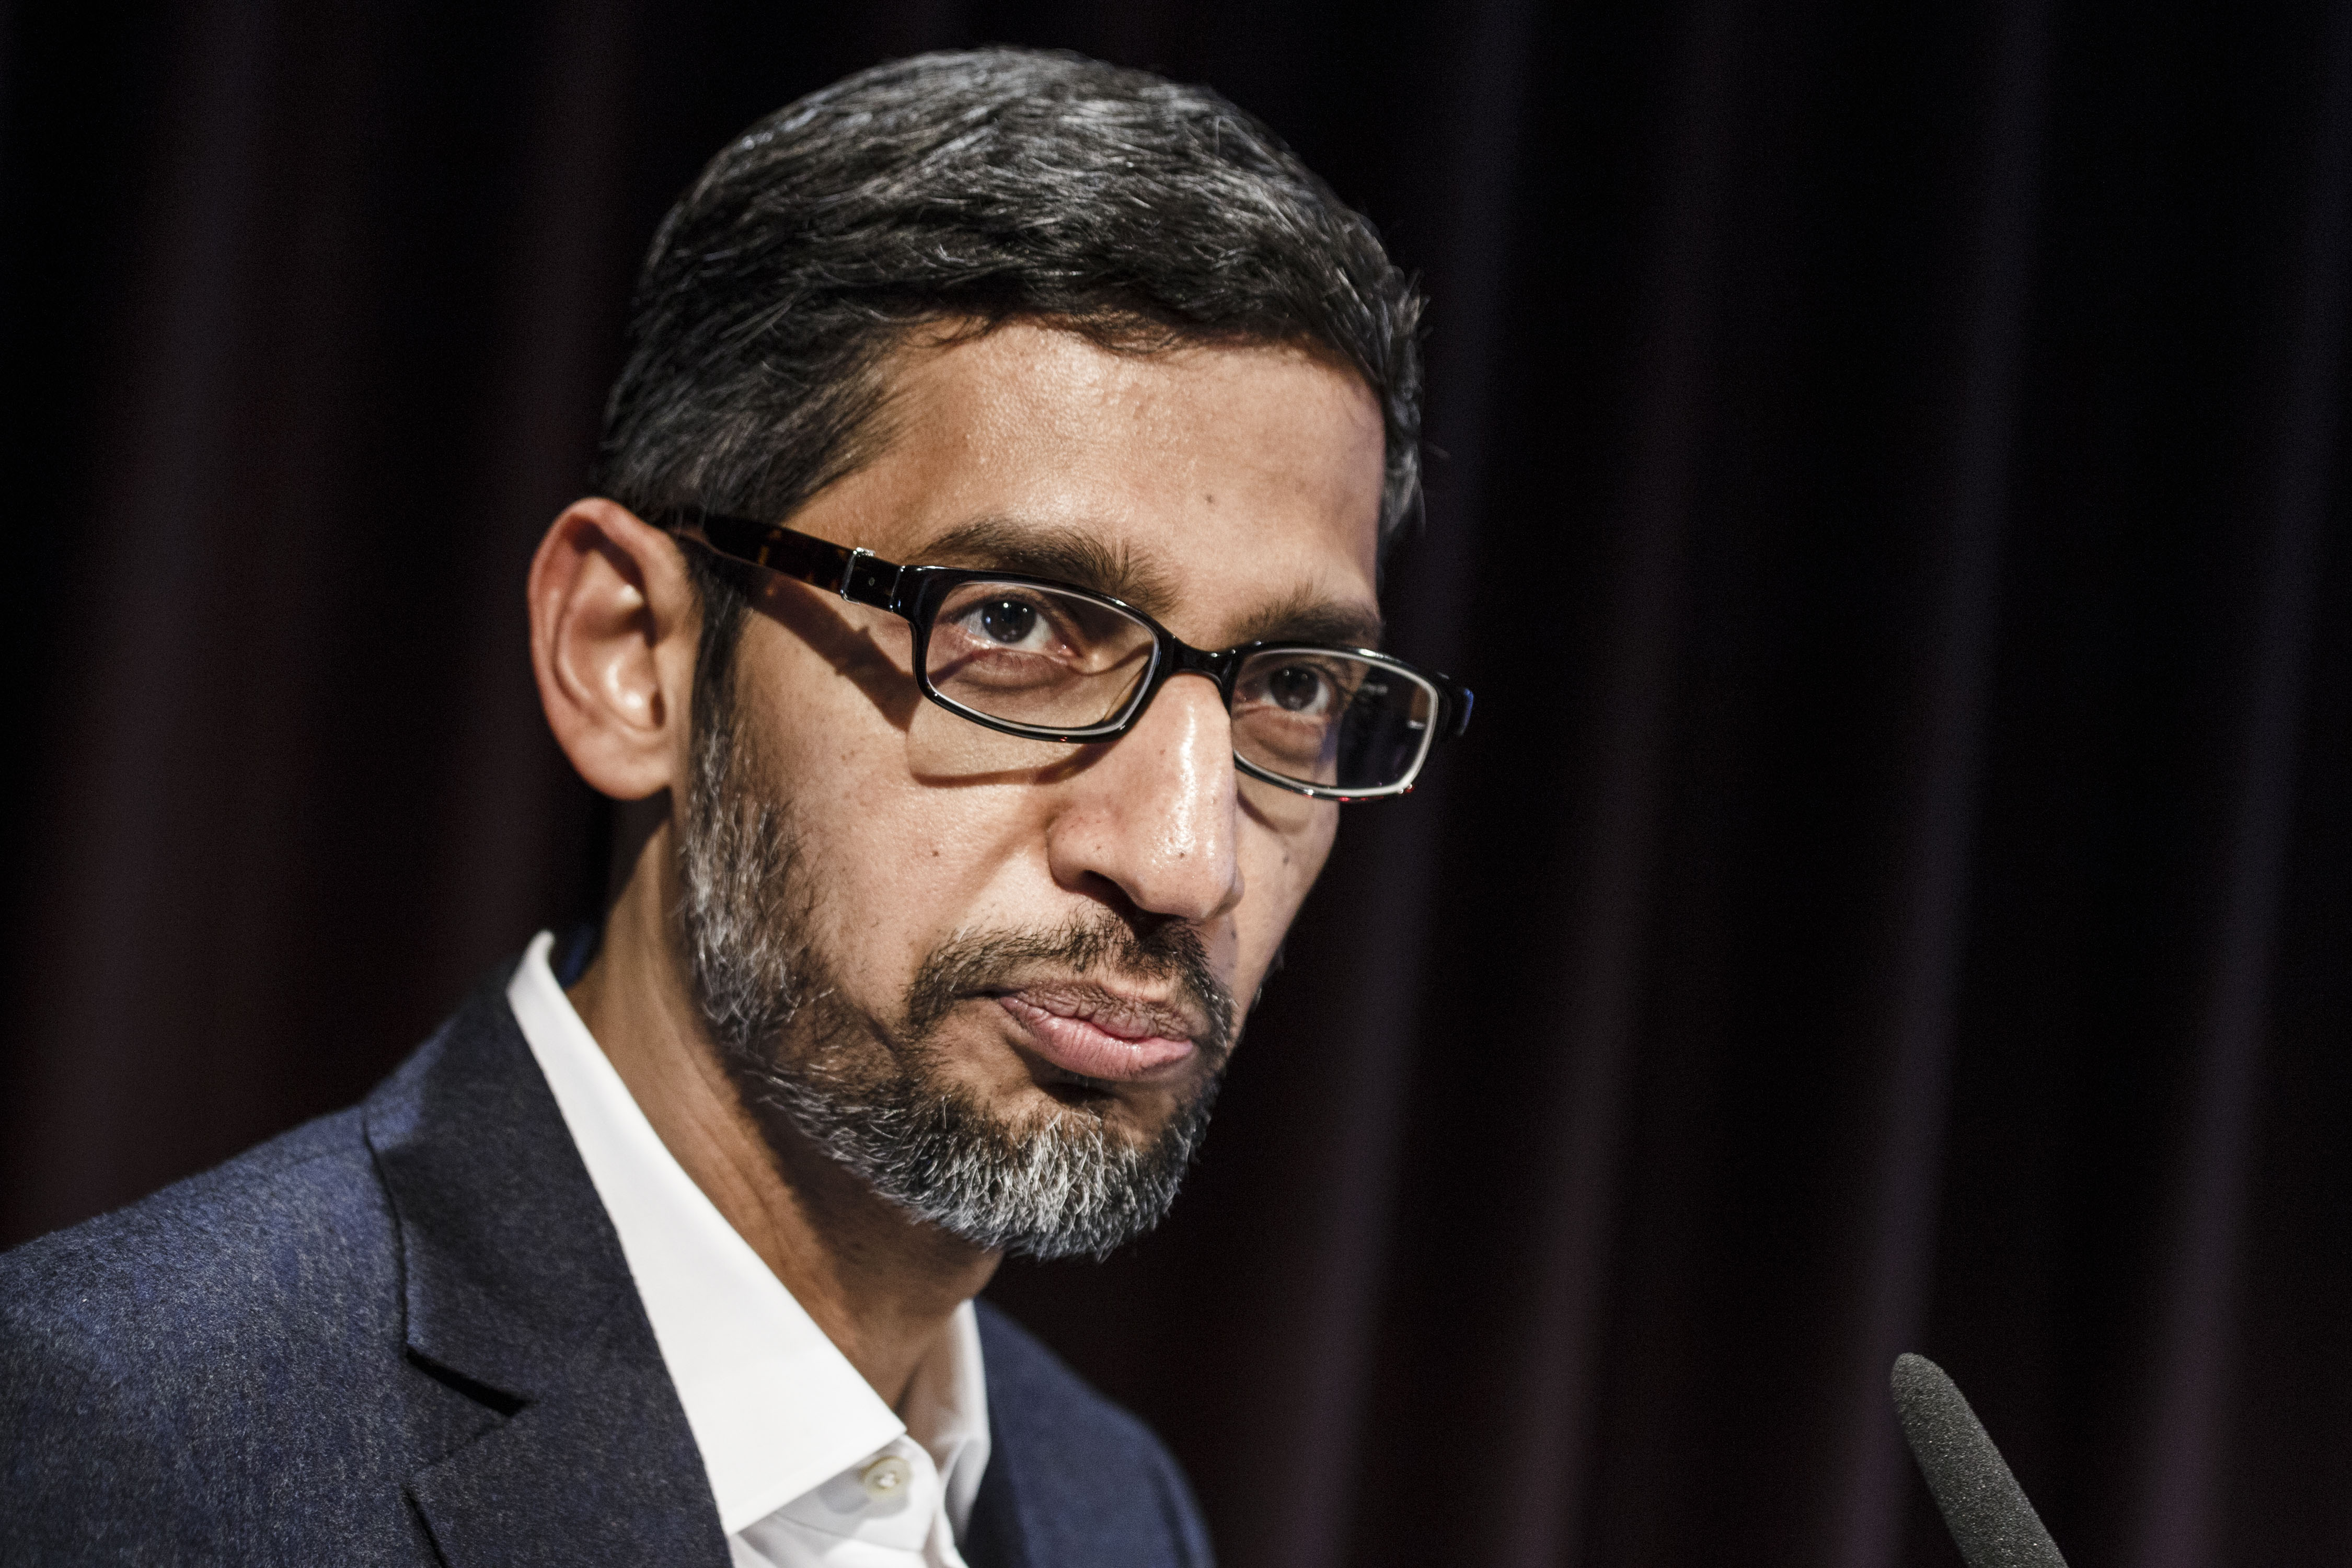 Google to get help from advisory council on developing AI ethically